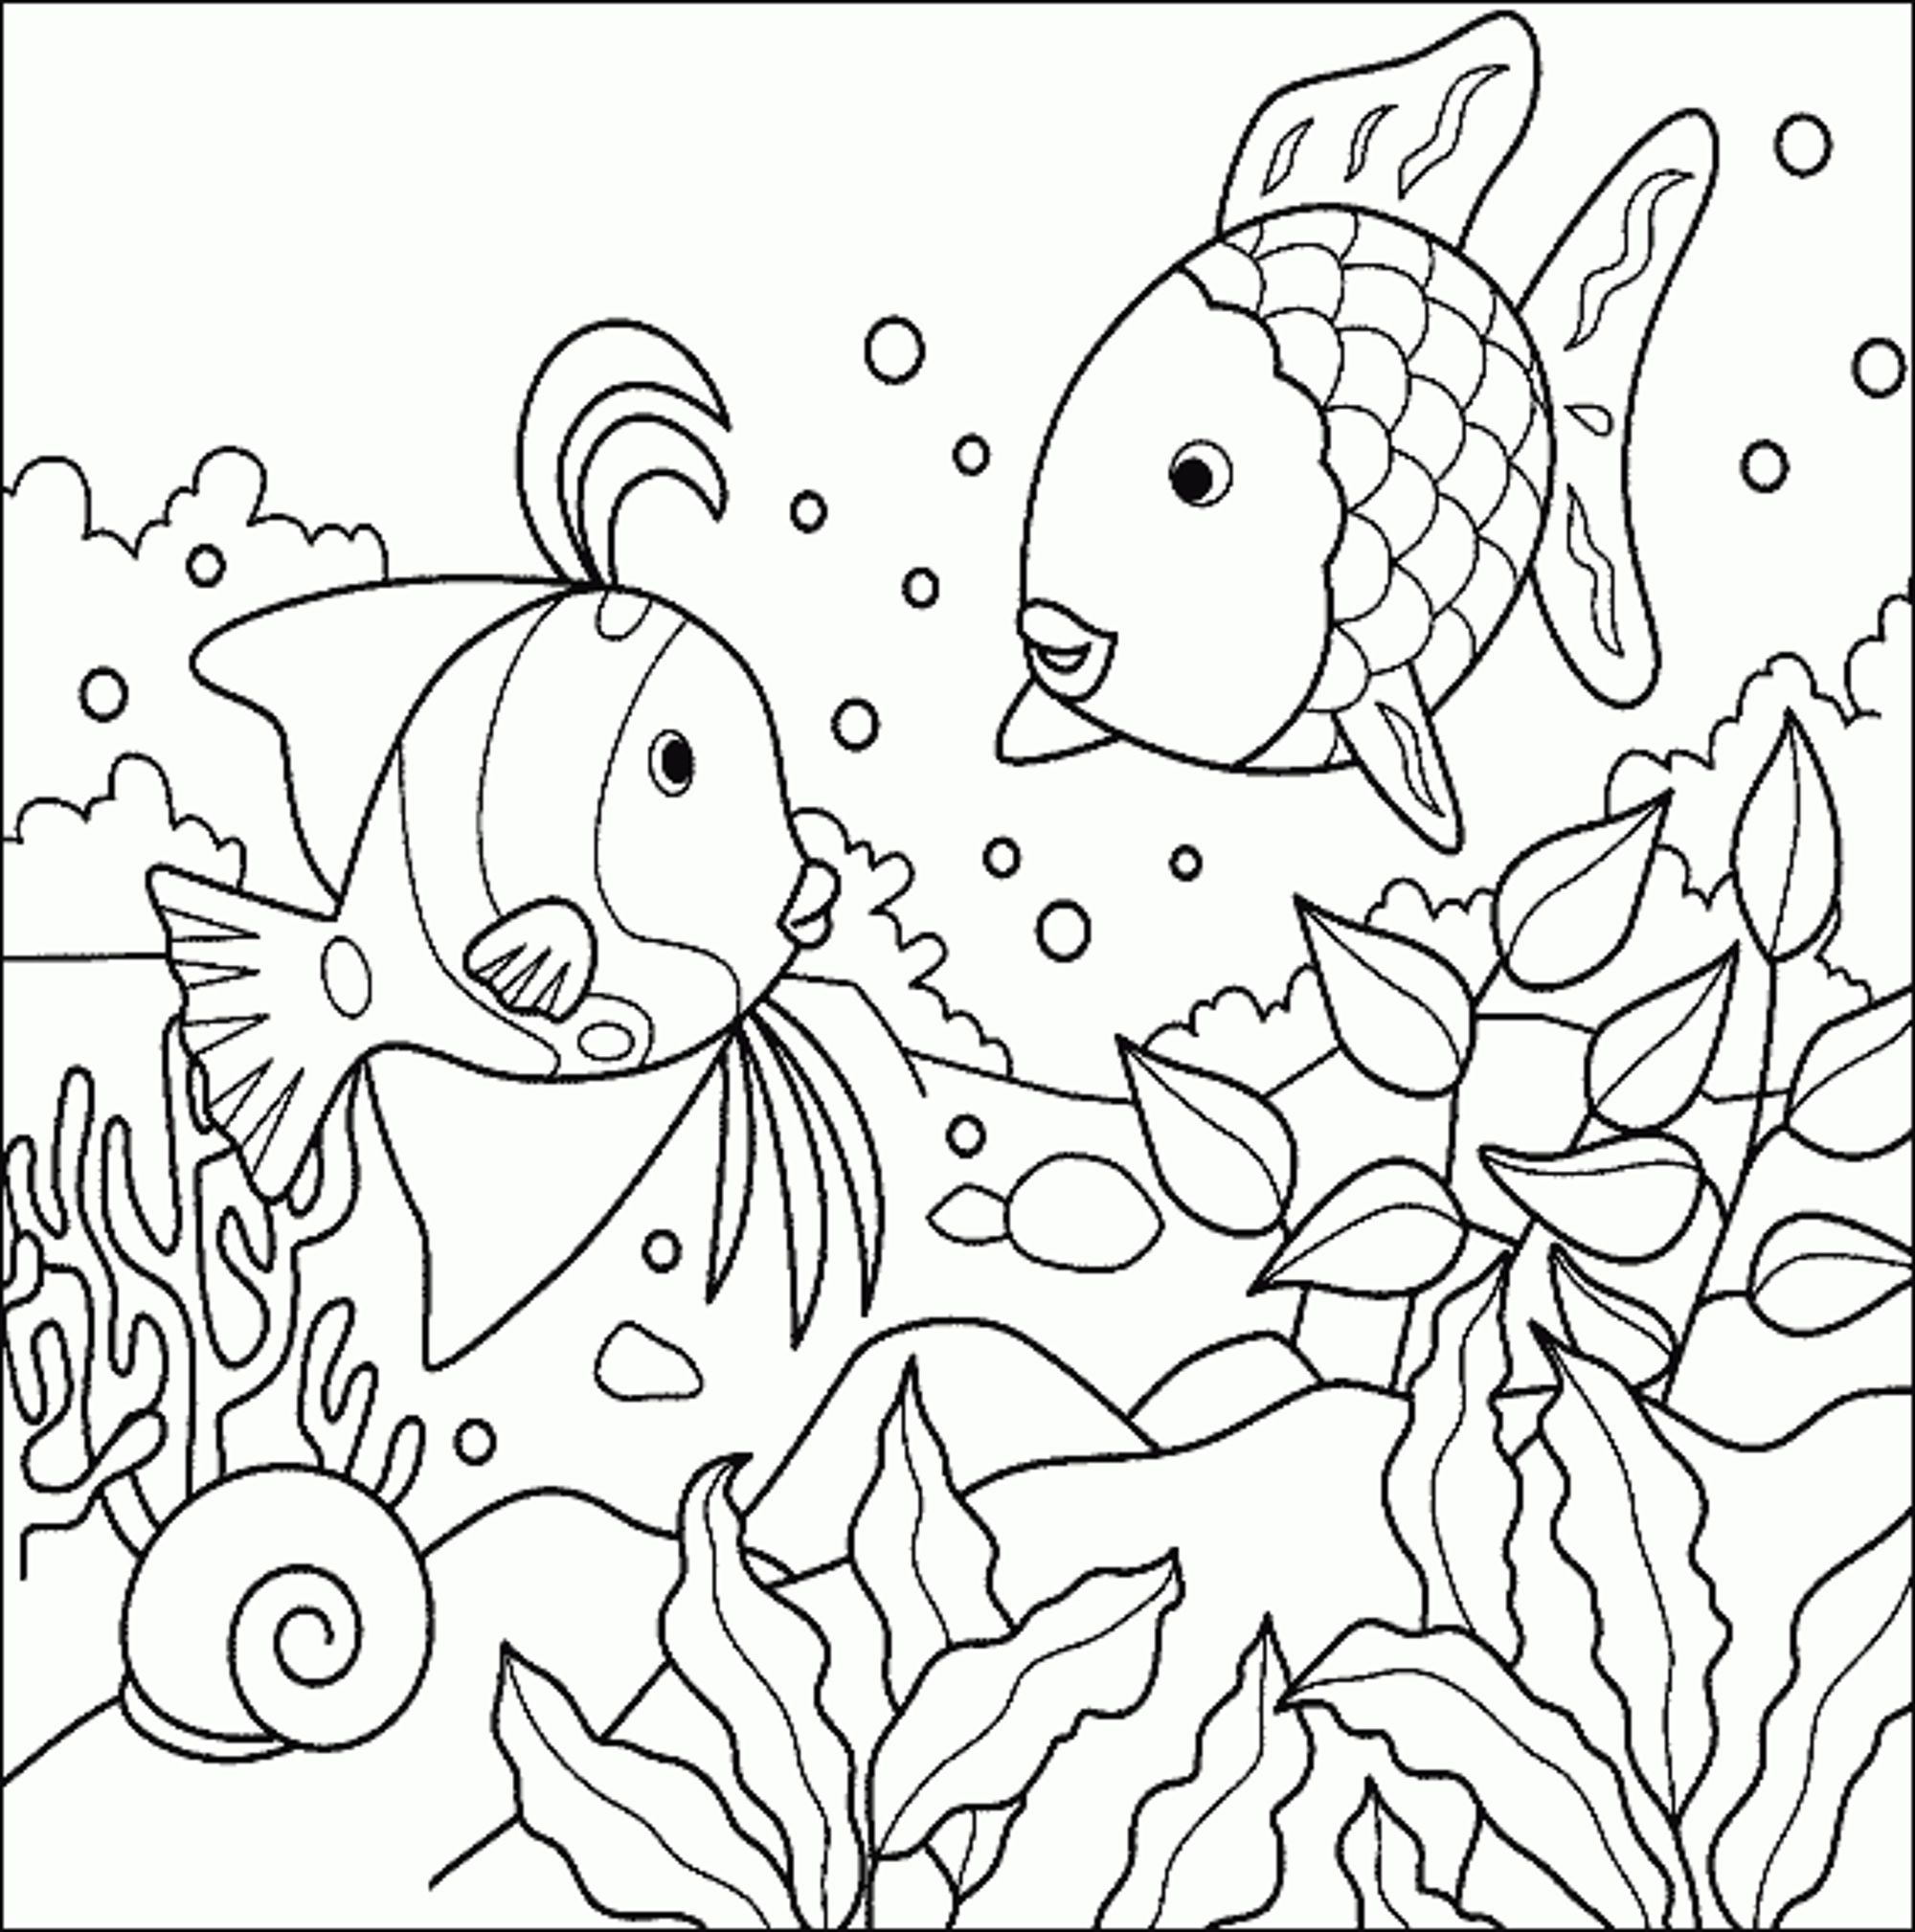 Rainbow coloring pages for adults